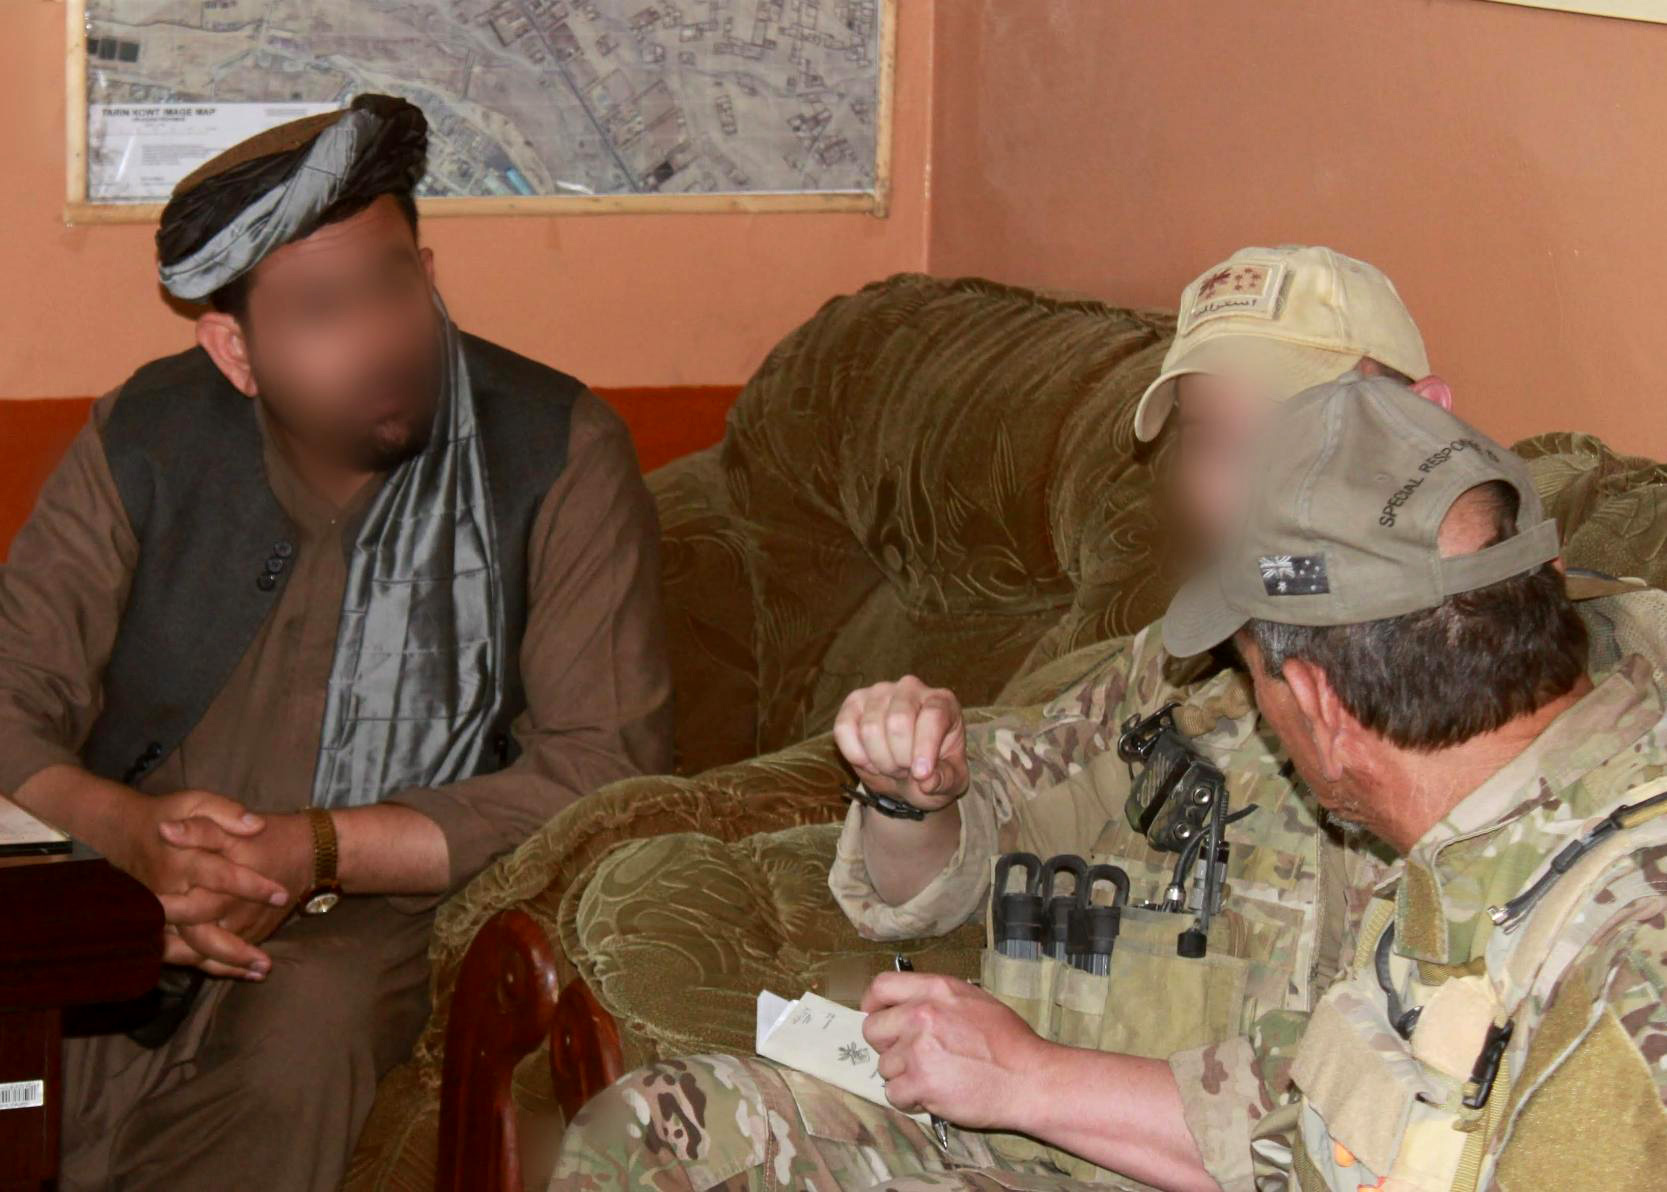 Former ADF soldier Shane Healy (middle) meets with a local Afghan on a 2012 mission in Uruzgan province.